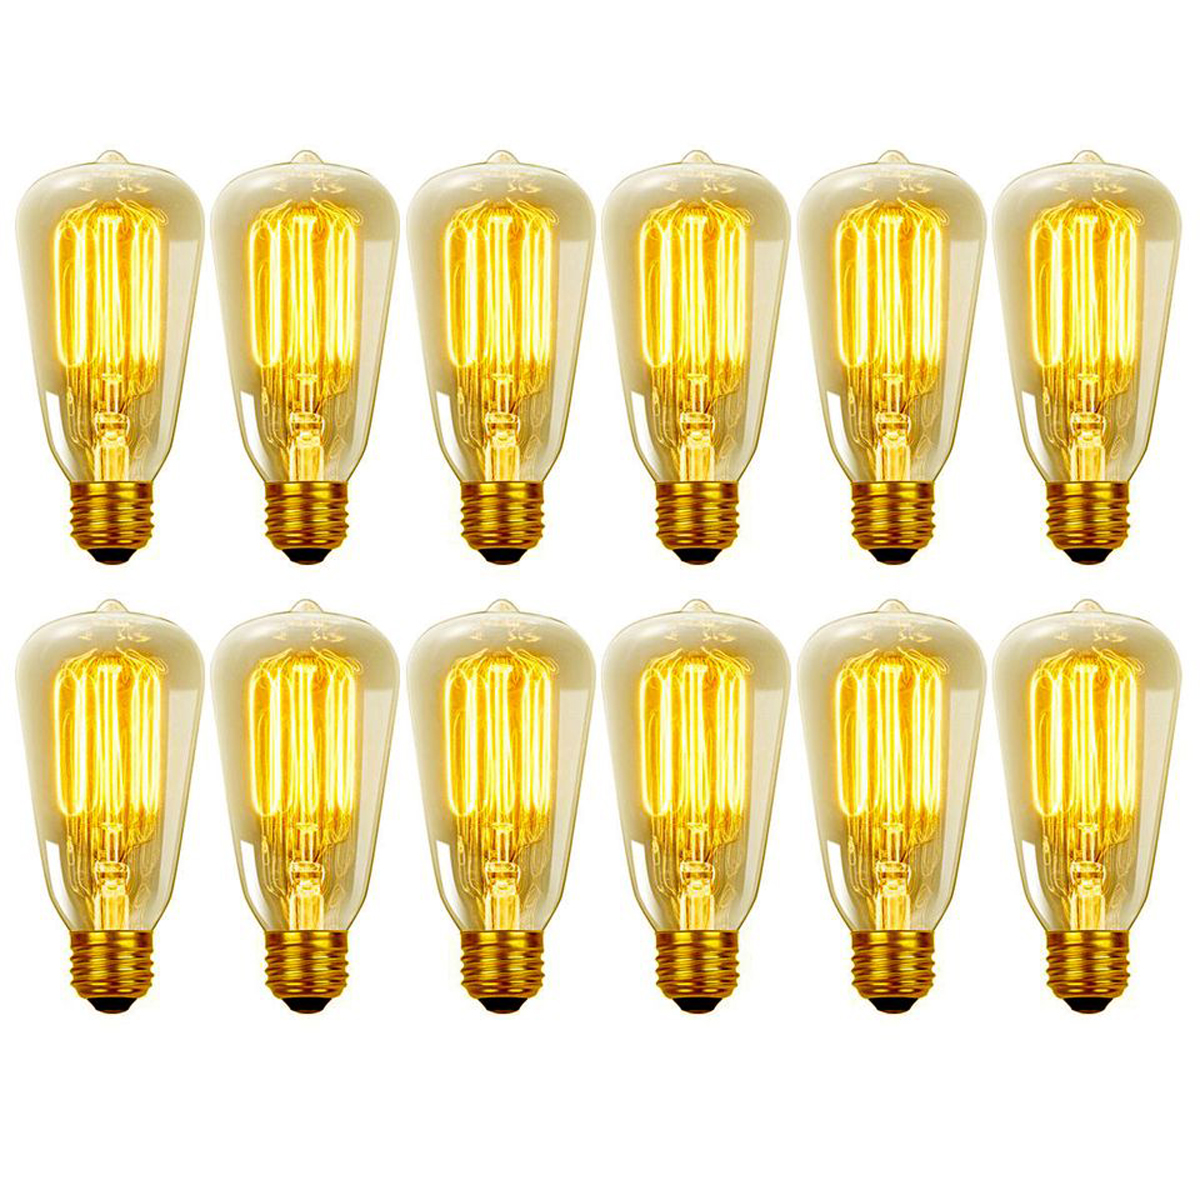 Globe Electric 40 Watt 40W Vintage Edison S60 Squirrel Cage Incandescent Filament Light Bulb (12-Pack)